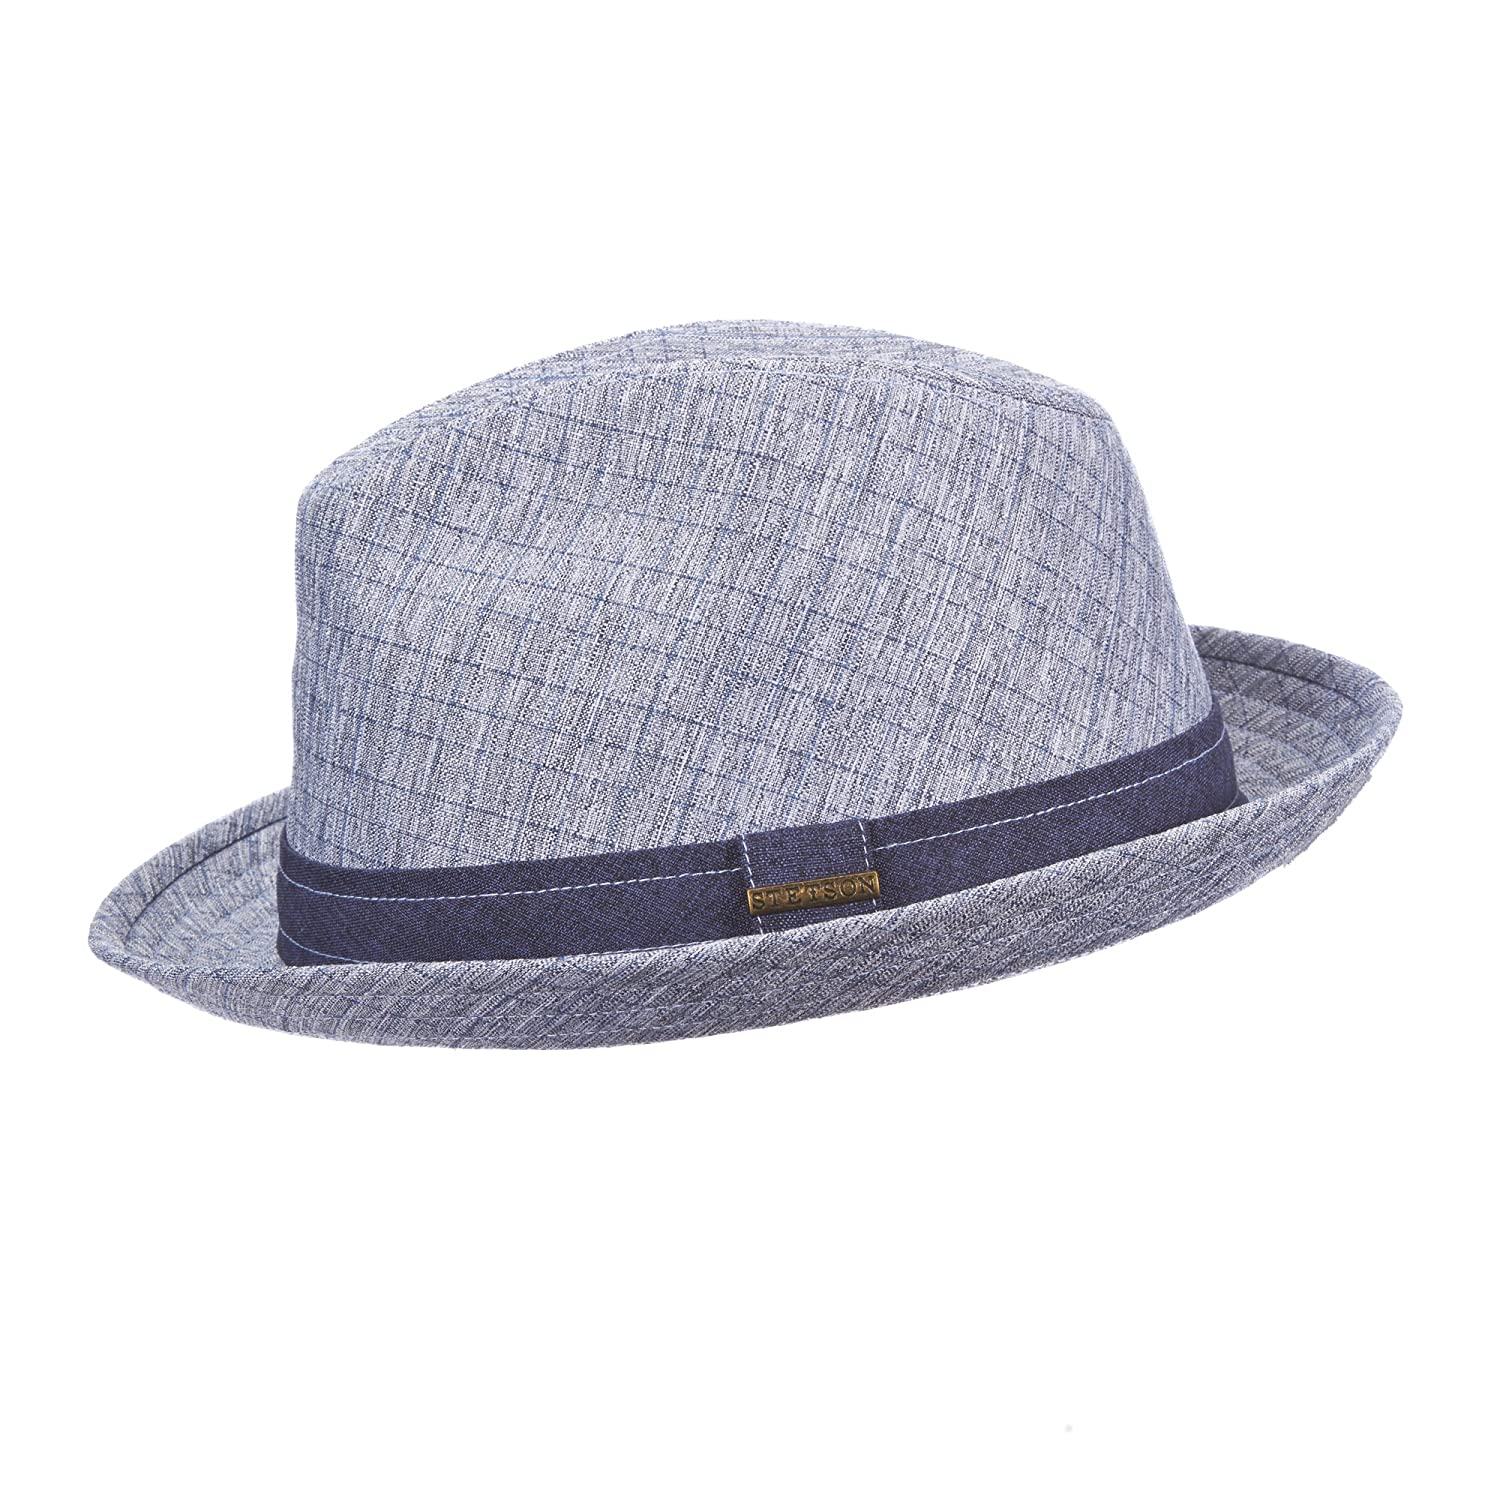 STC249 NEW STETSON CLASSIC COLLECTION POLYESTER TATTERSALL FEDORA